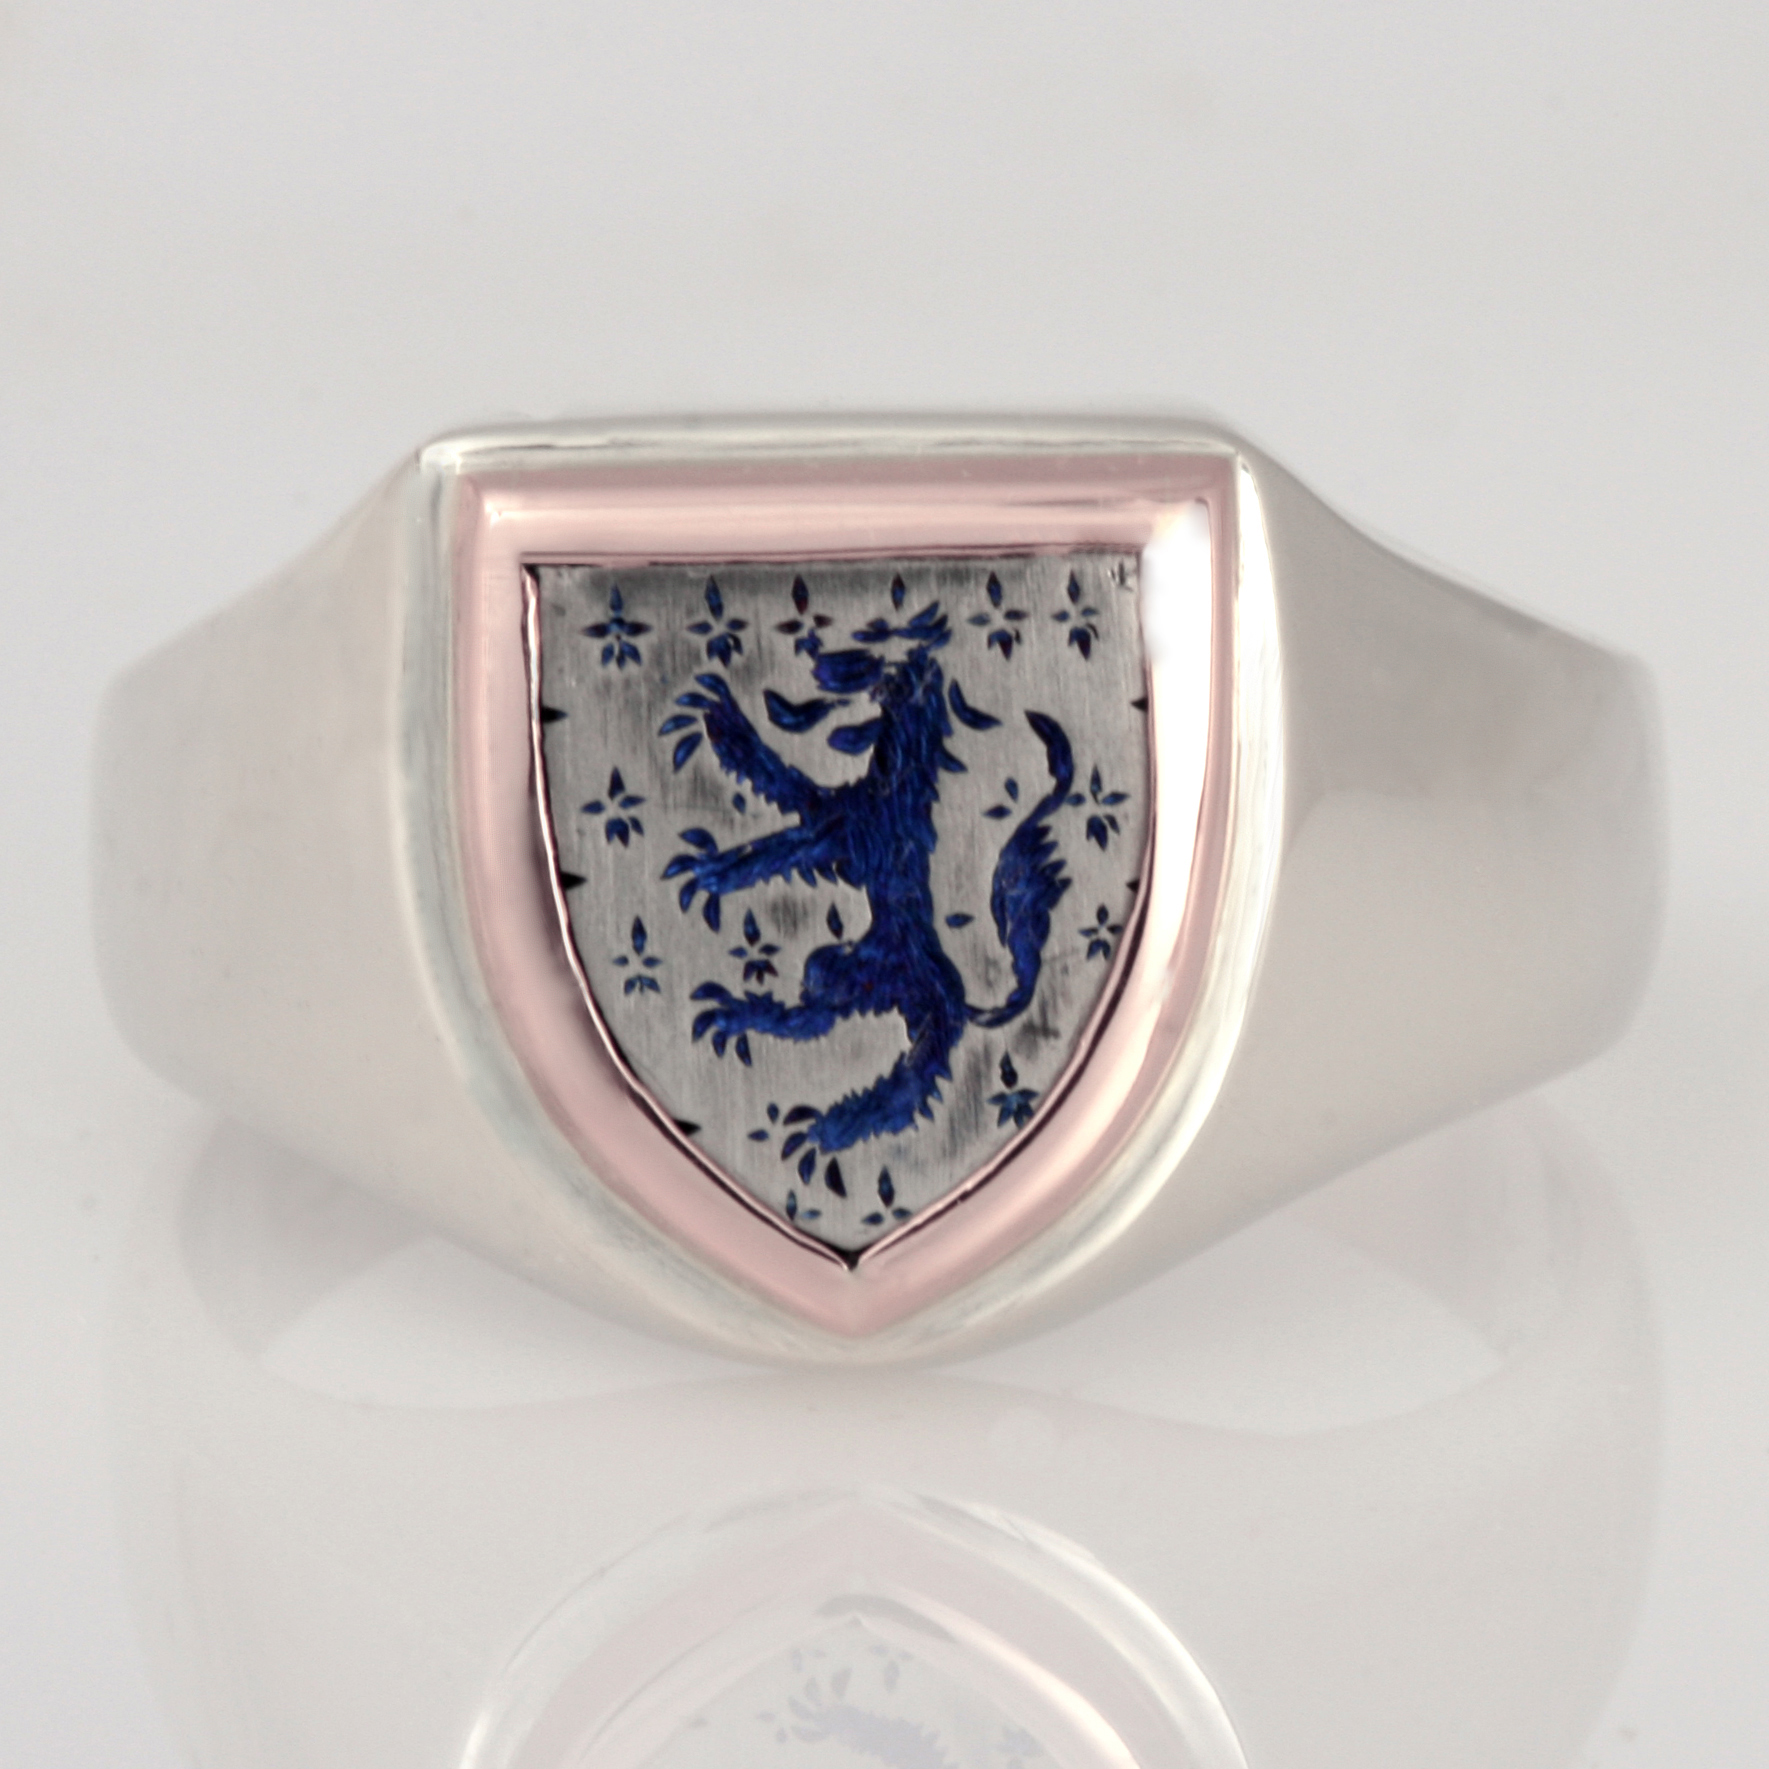 9ct rose gold, white gold and titanium hand engraved sheild crest ring